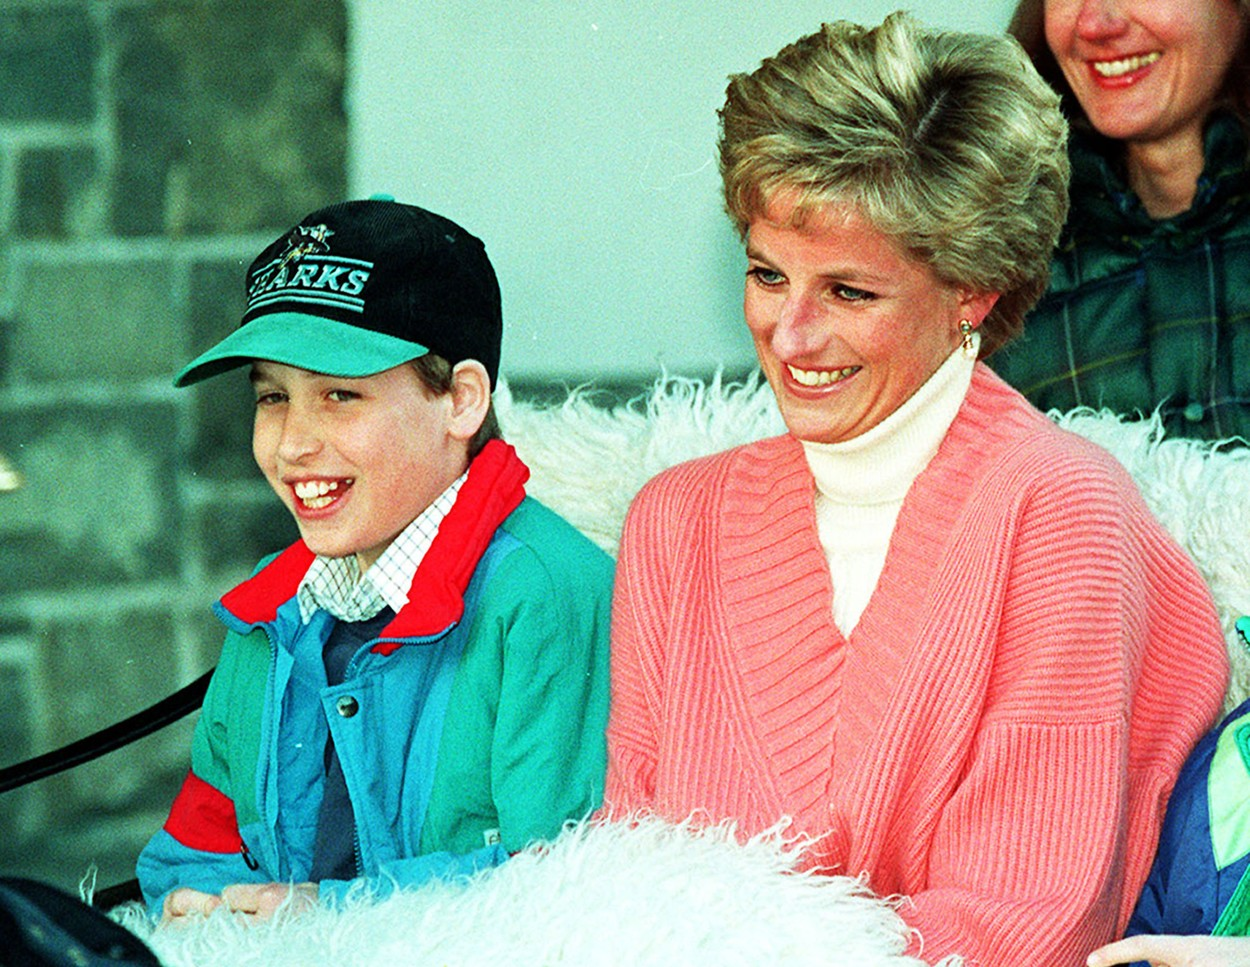 File photo dated 27/3/1994 of Prince William with his mother, Diana, Princess of Wales. The Duke of Cambridge has revealed the shock of his mother's death lives with him to this day as he sympathised with a London Marathon runner who appealed for advice on how to comfort her bereaved children., Image: 329485999, License: Rights-managed, Restrictions: FILE PHOTO, Model Release: no, Credit line: Profimedia, Press Association